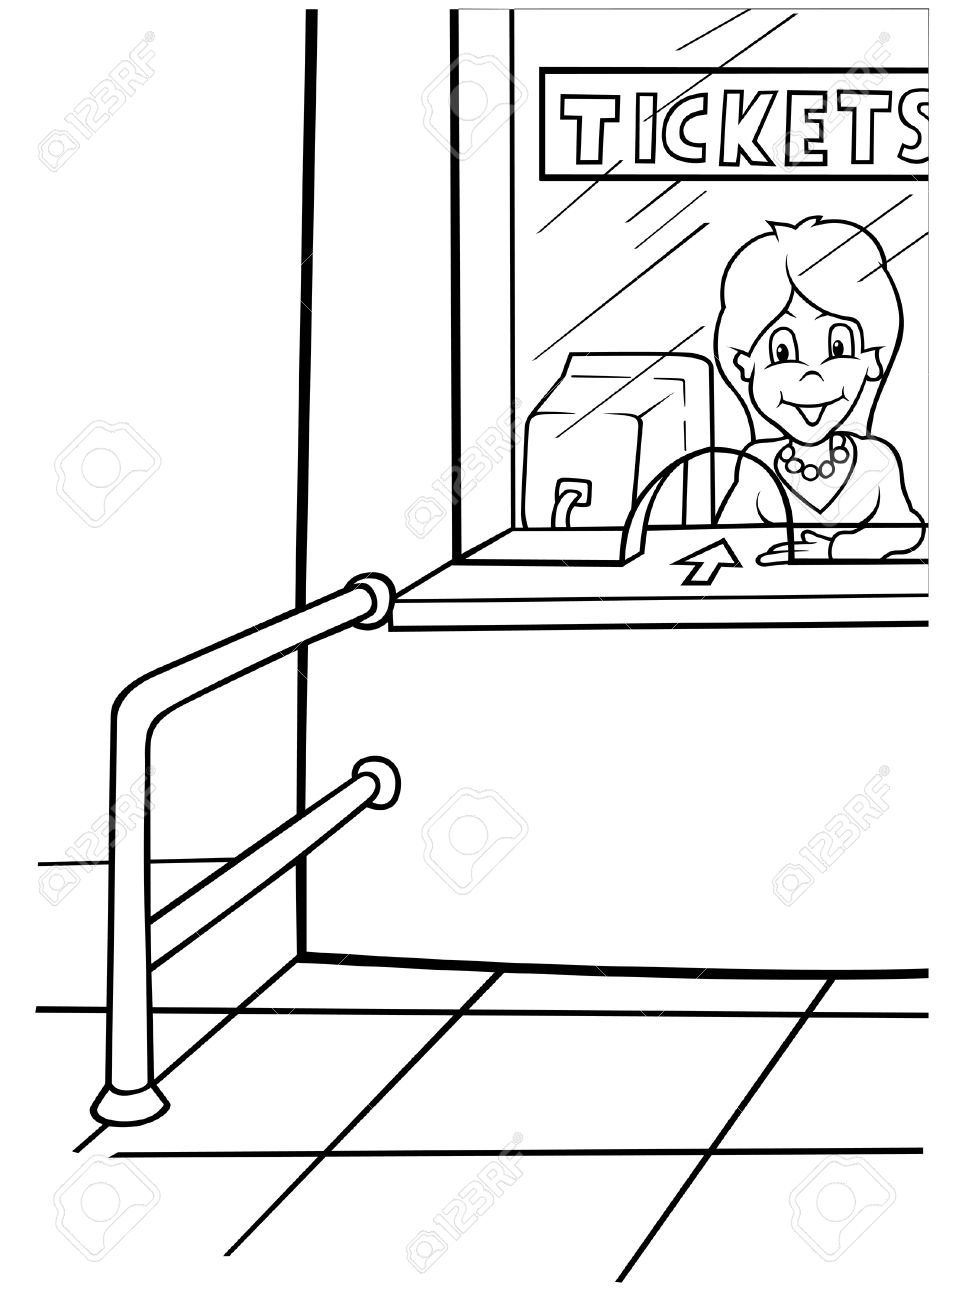 Airport Tickets - Black and White Cartoon illustration, Vector Stock Vector - 8756015